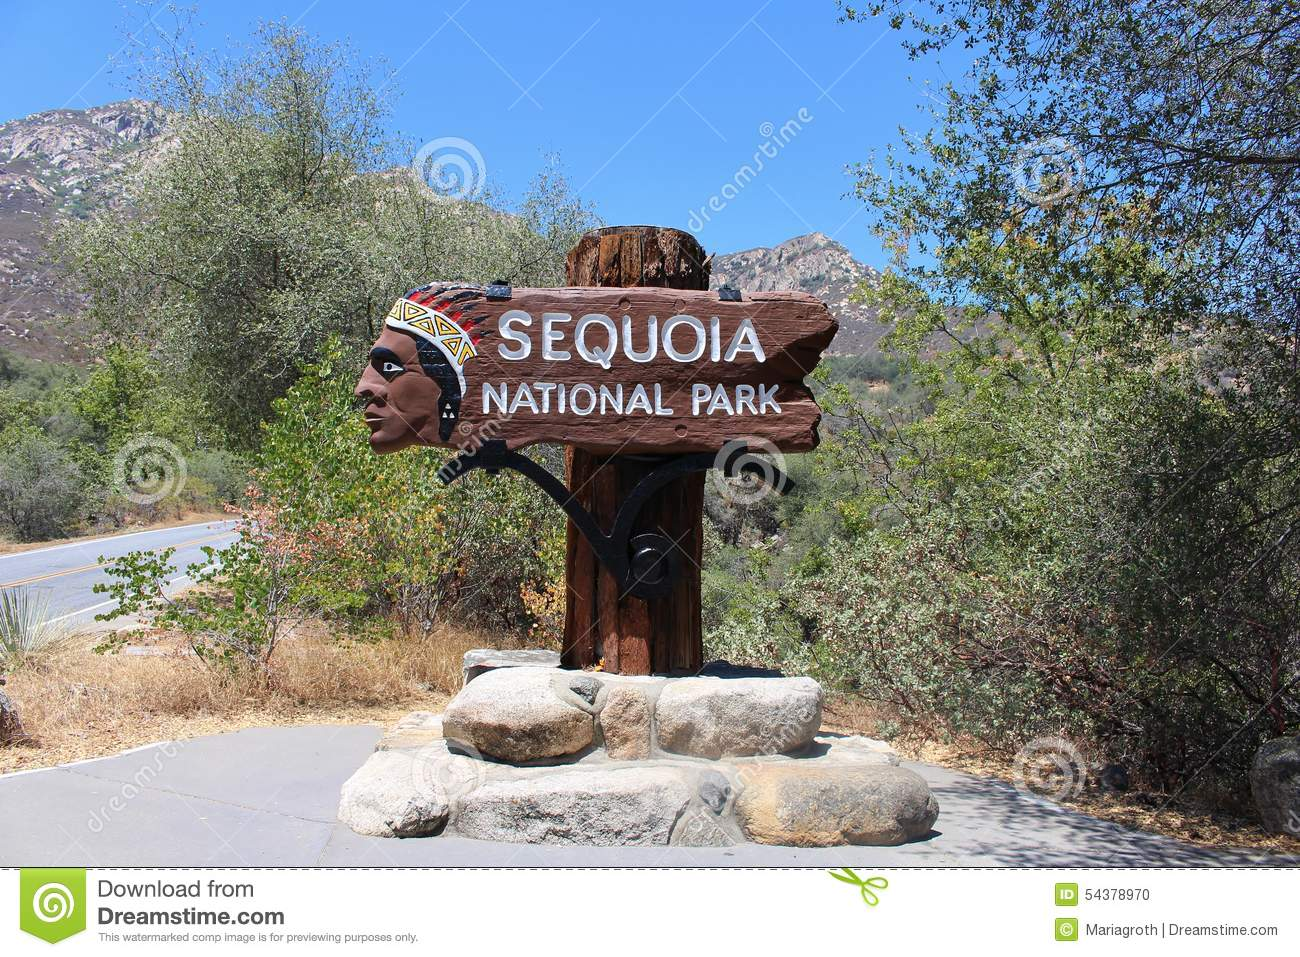 Sequoia National Park Sign Stock Photo.